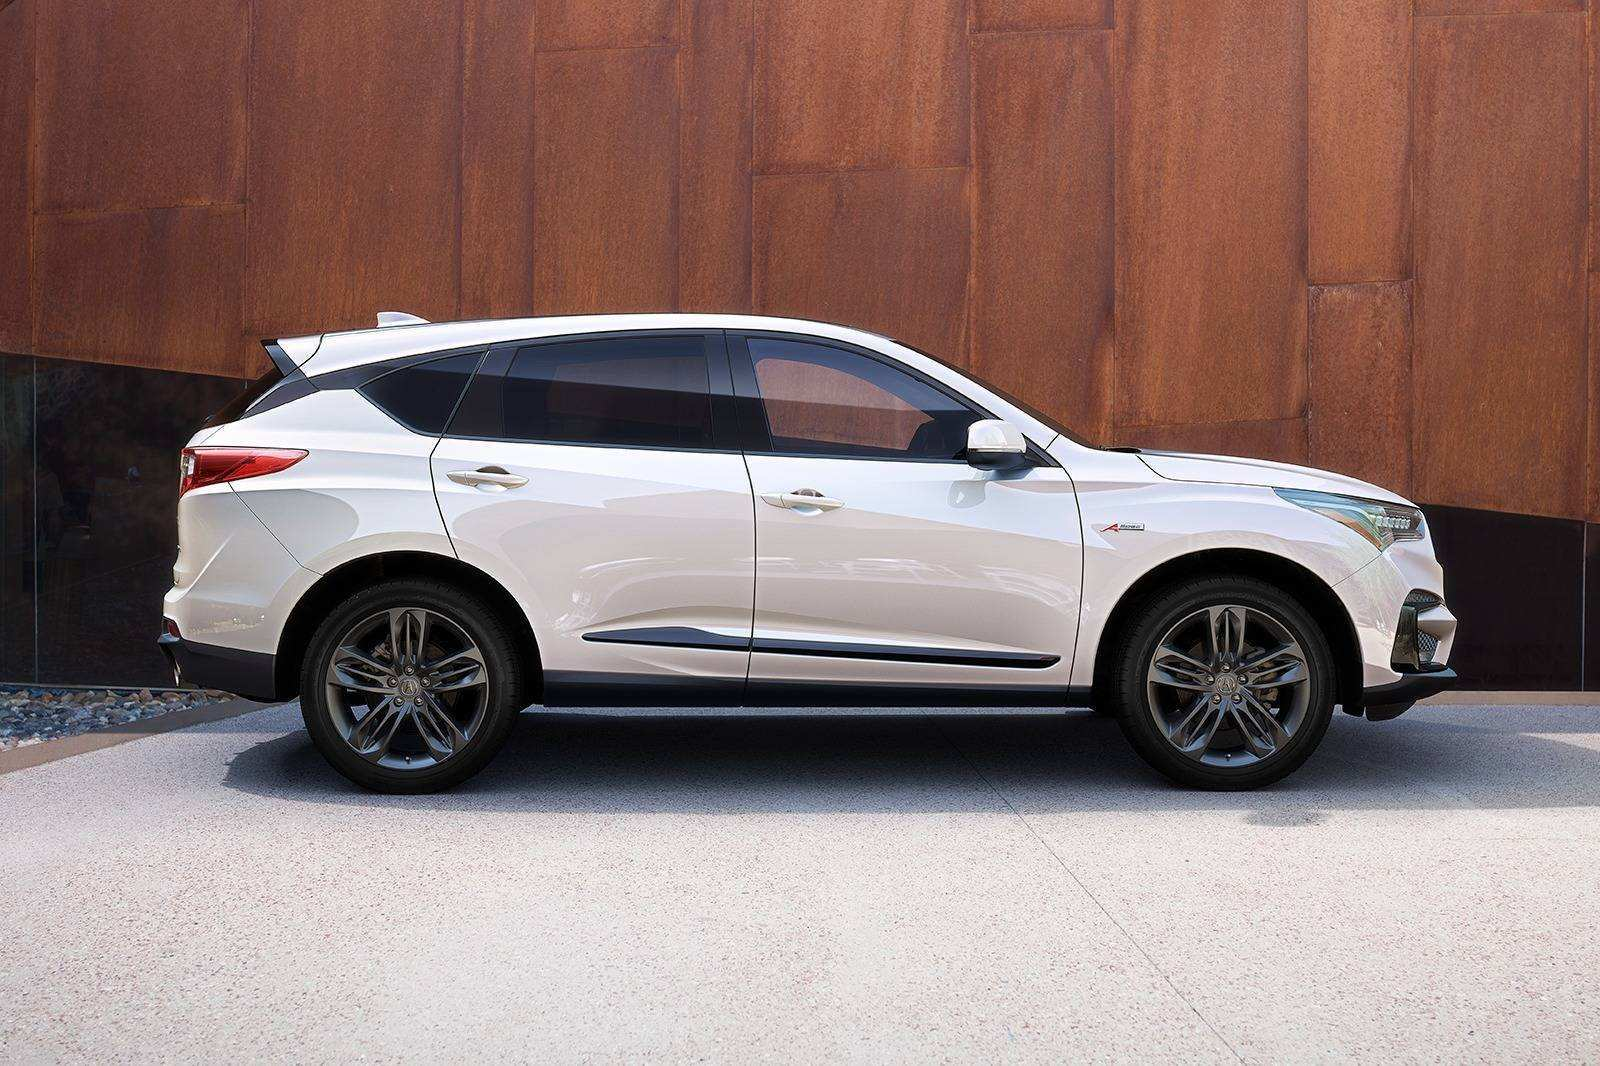 13 New The Acura Zdx 2019 Price First Drive Rumors for The Acura Zdx 2019 Price First Drive